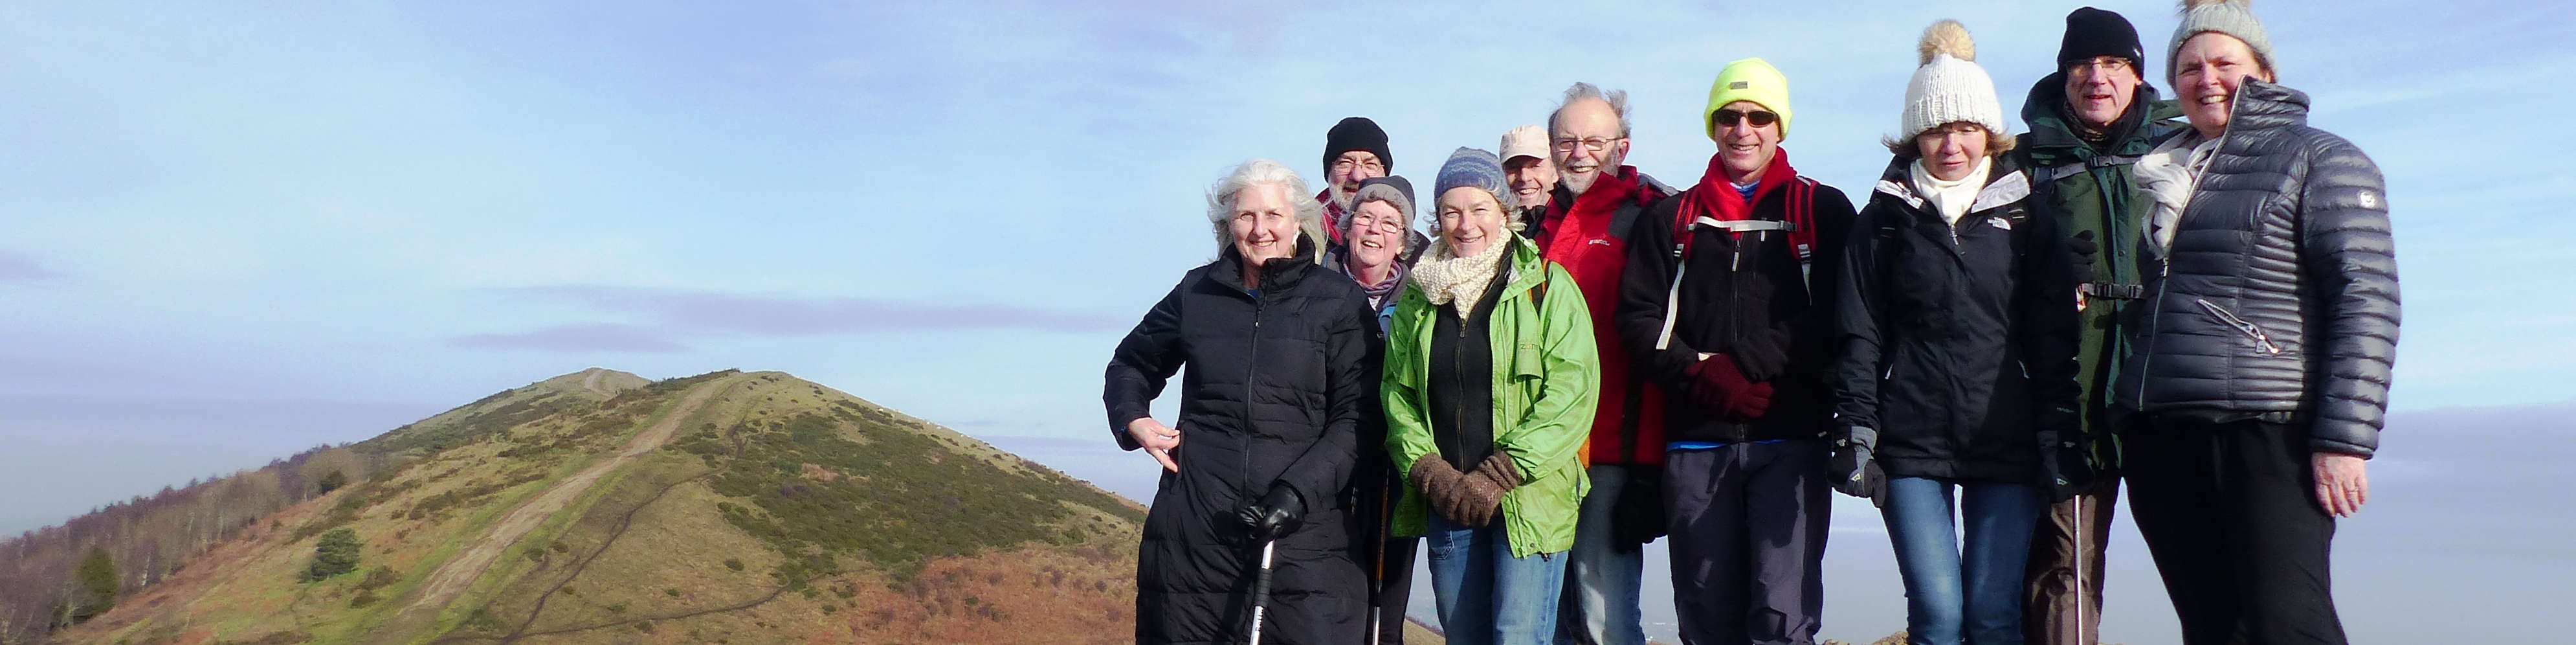 Walking group on the Malvern Hills